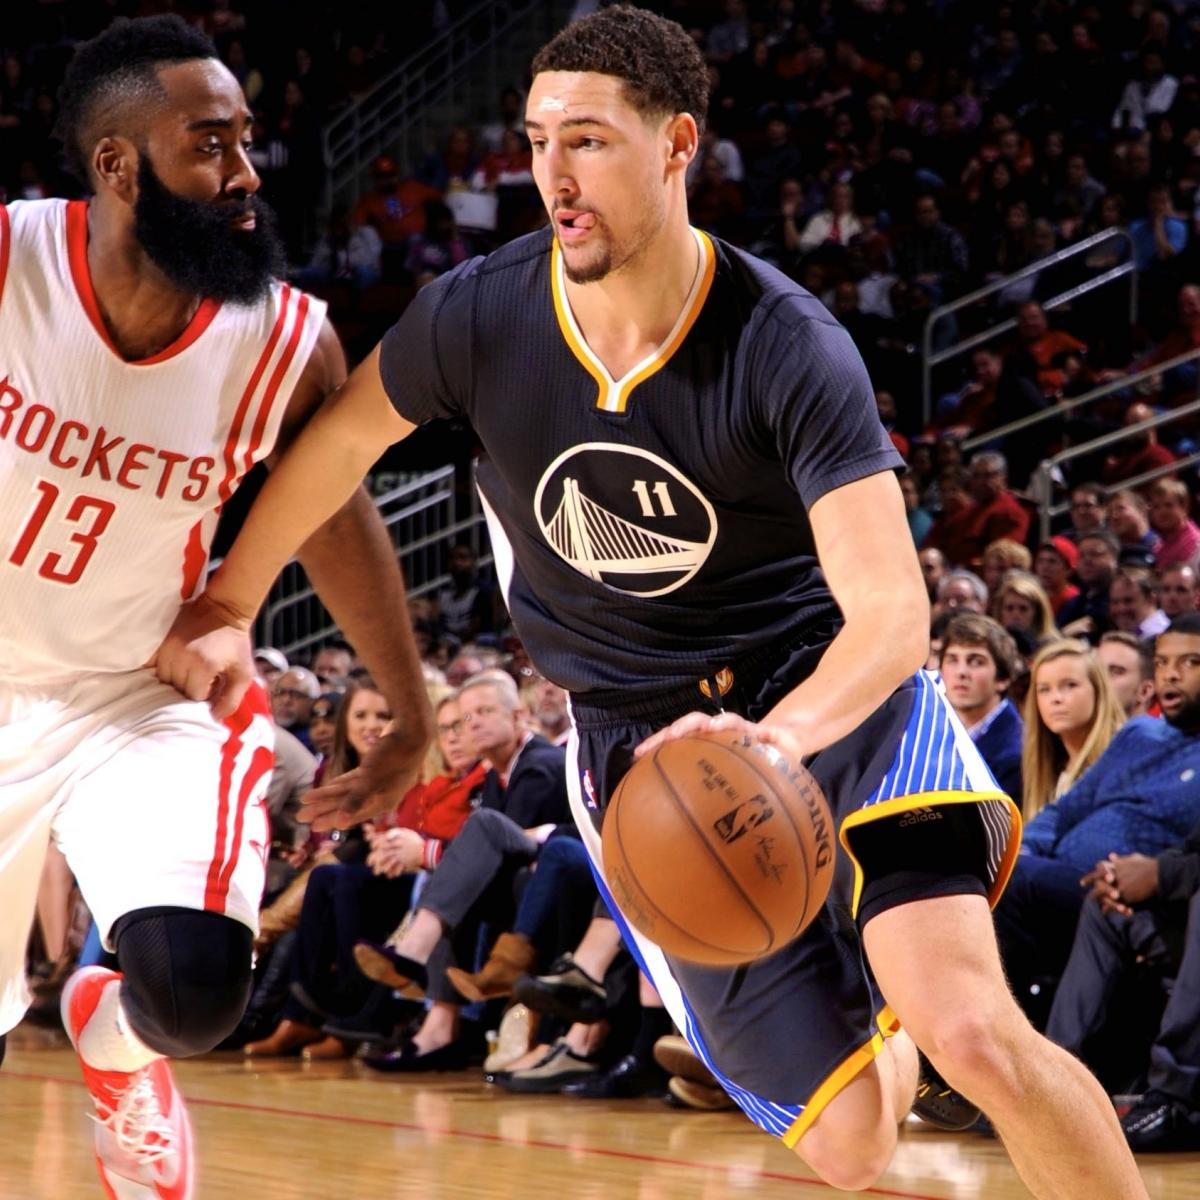 Golden State Warriors Vs. Houston Rockets 1/17/15: Video